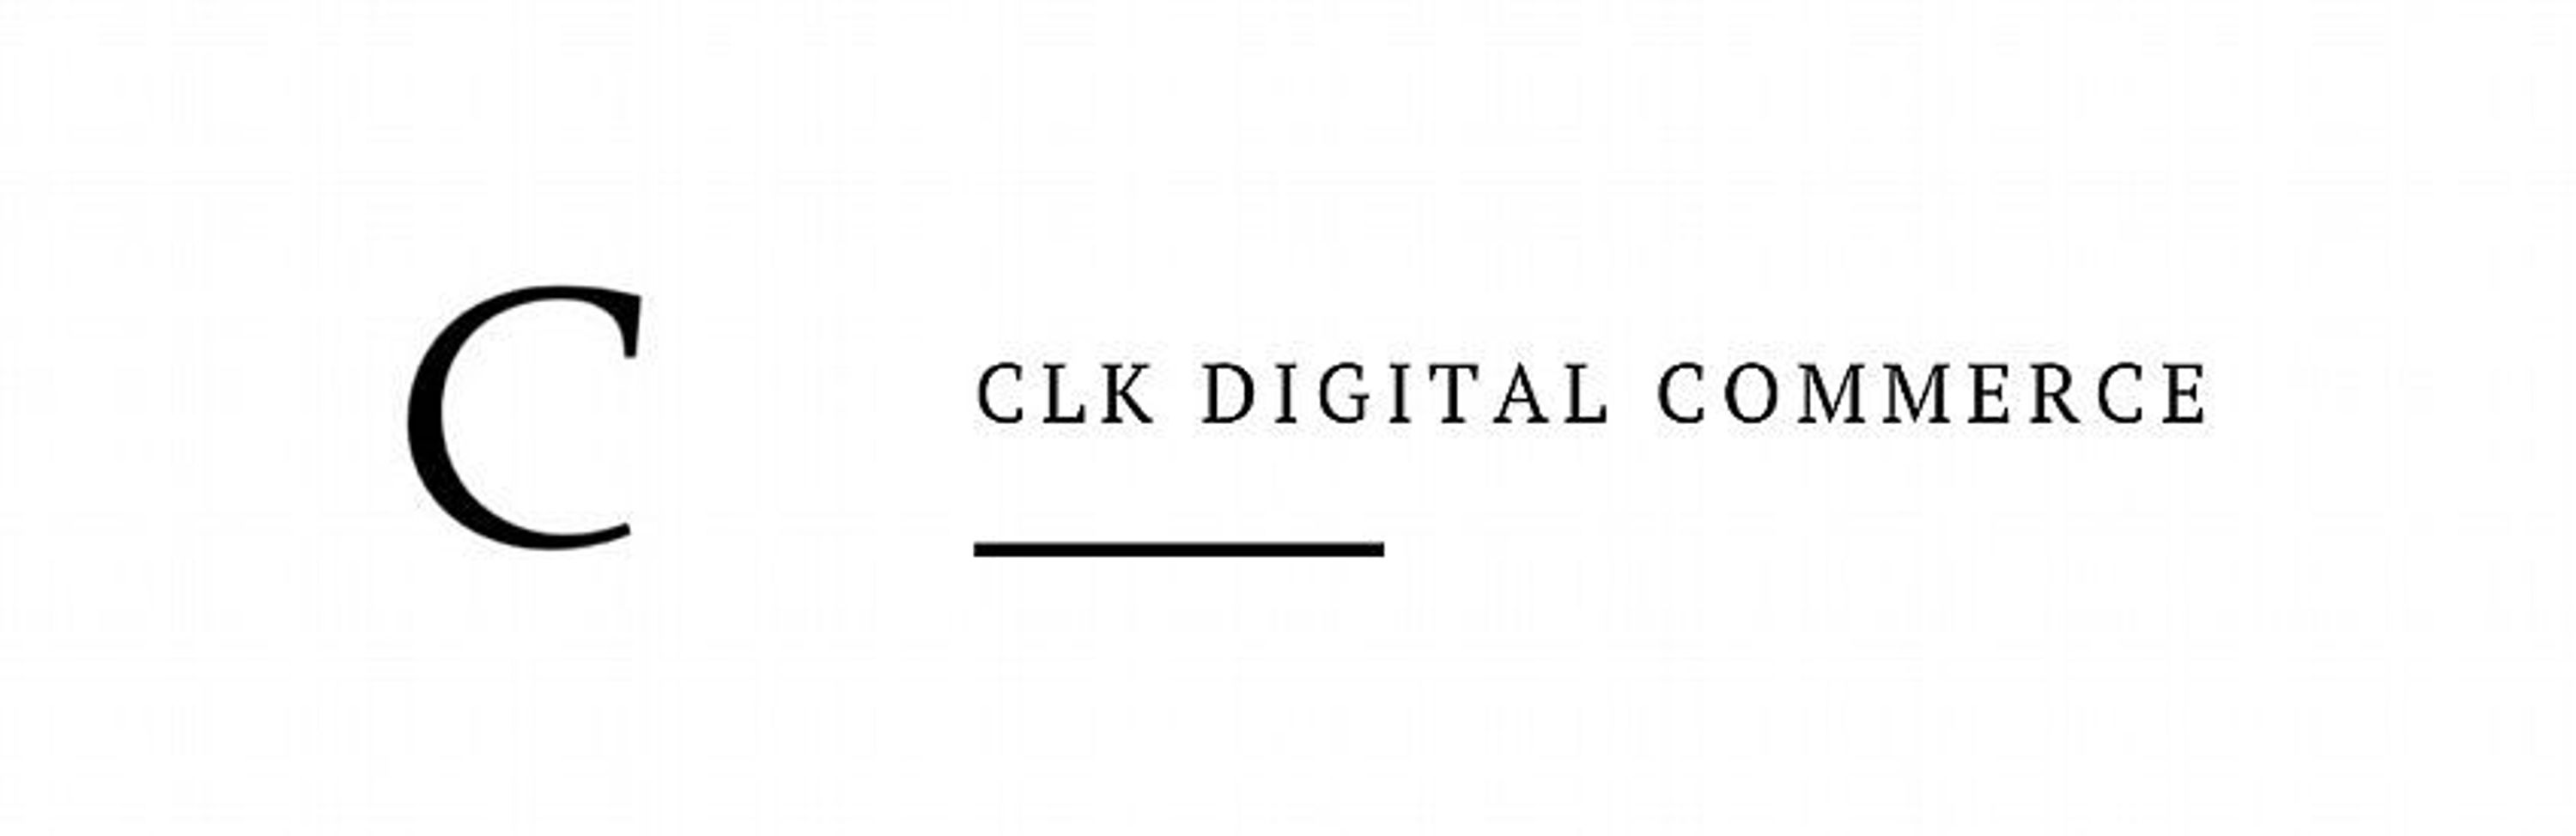 Clk Digital Commerce